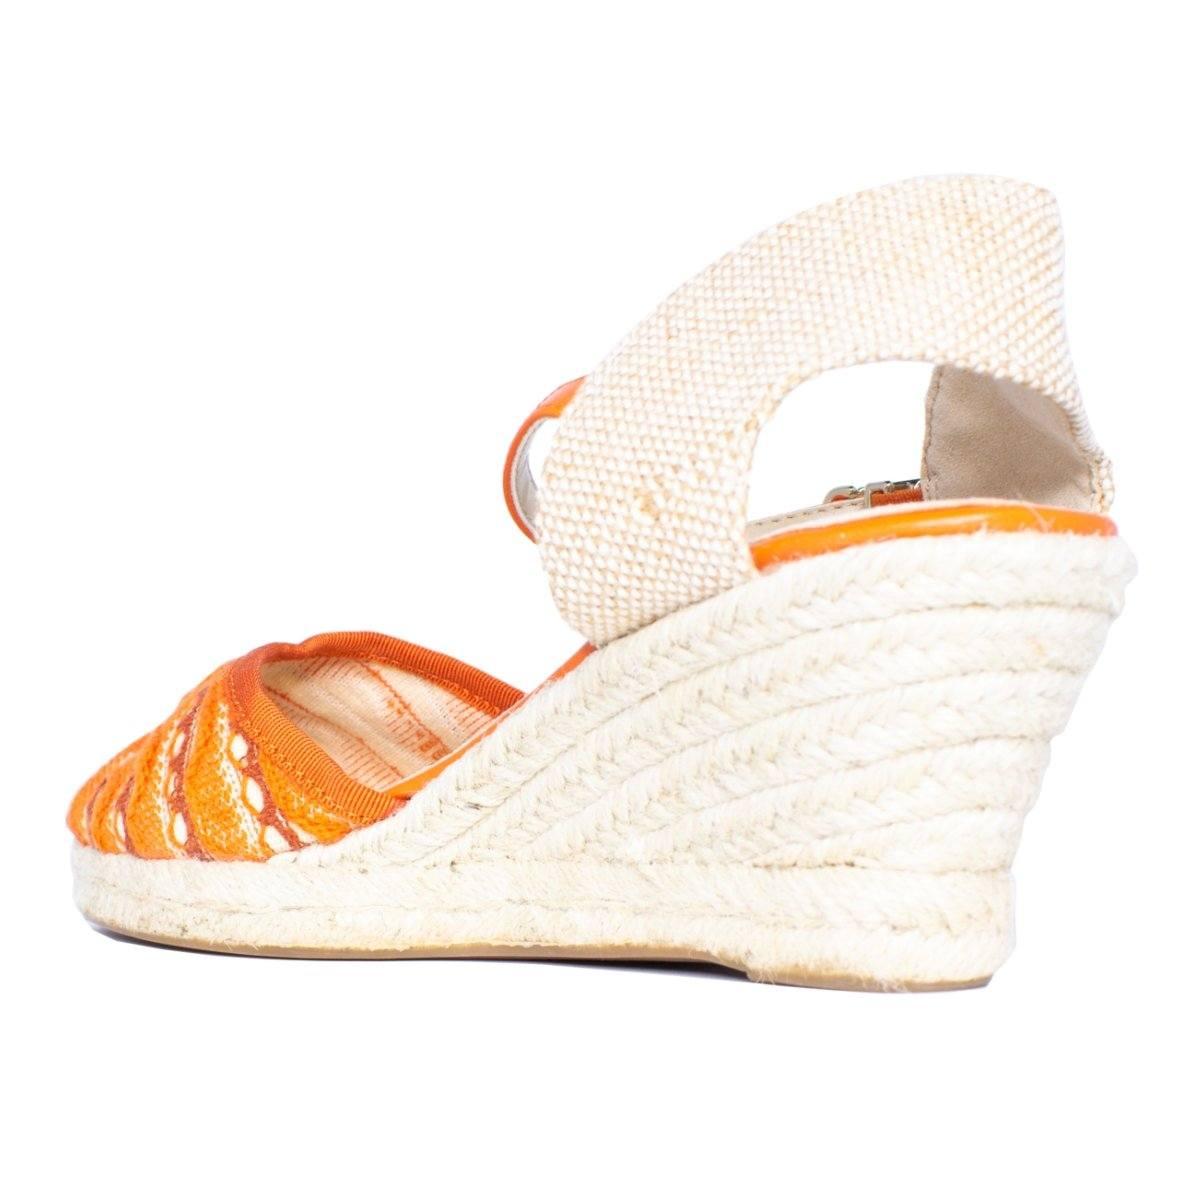 Back close view of knit wedge sandal with orange woven pattern